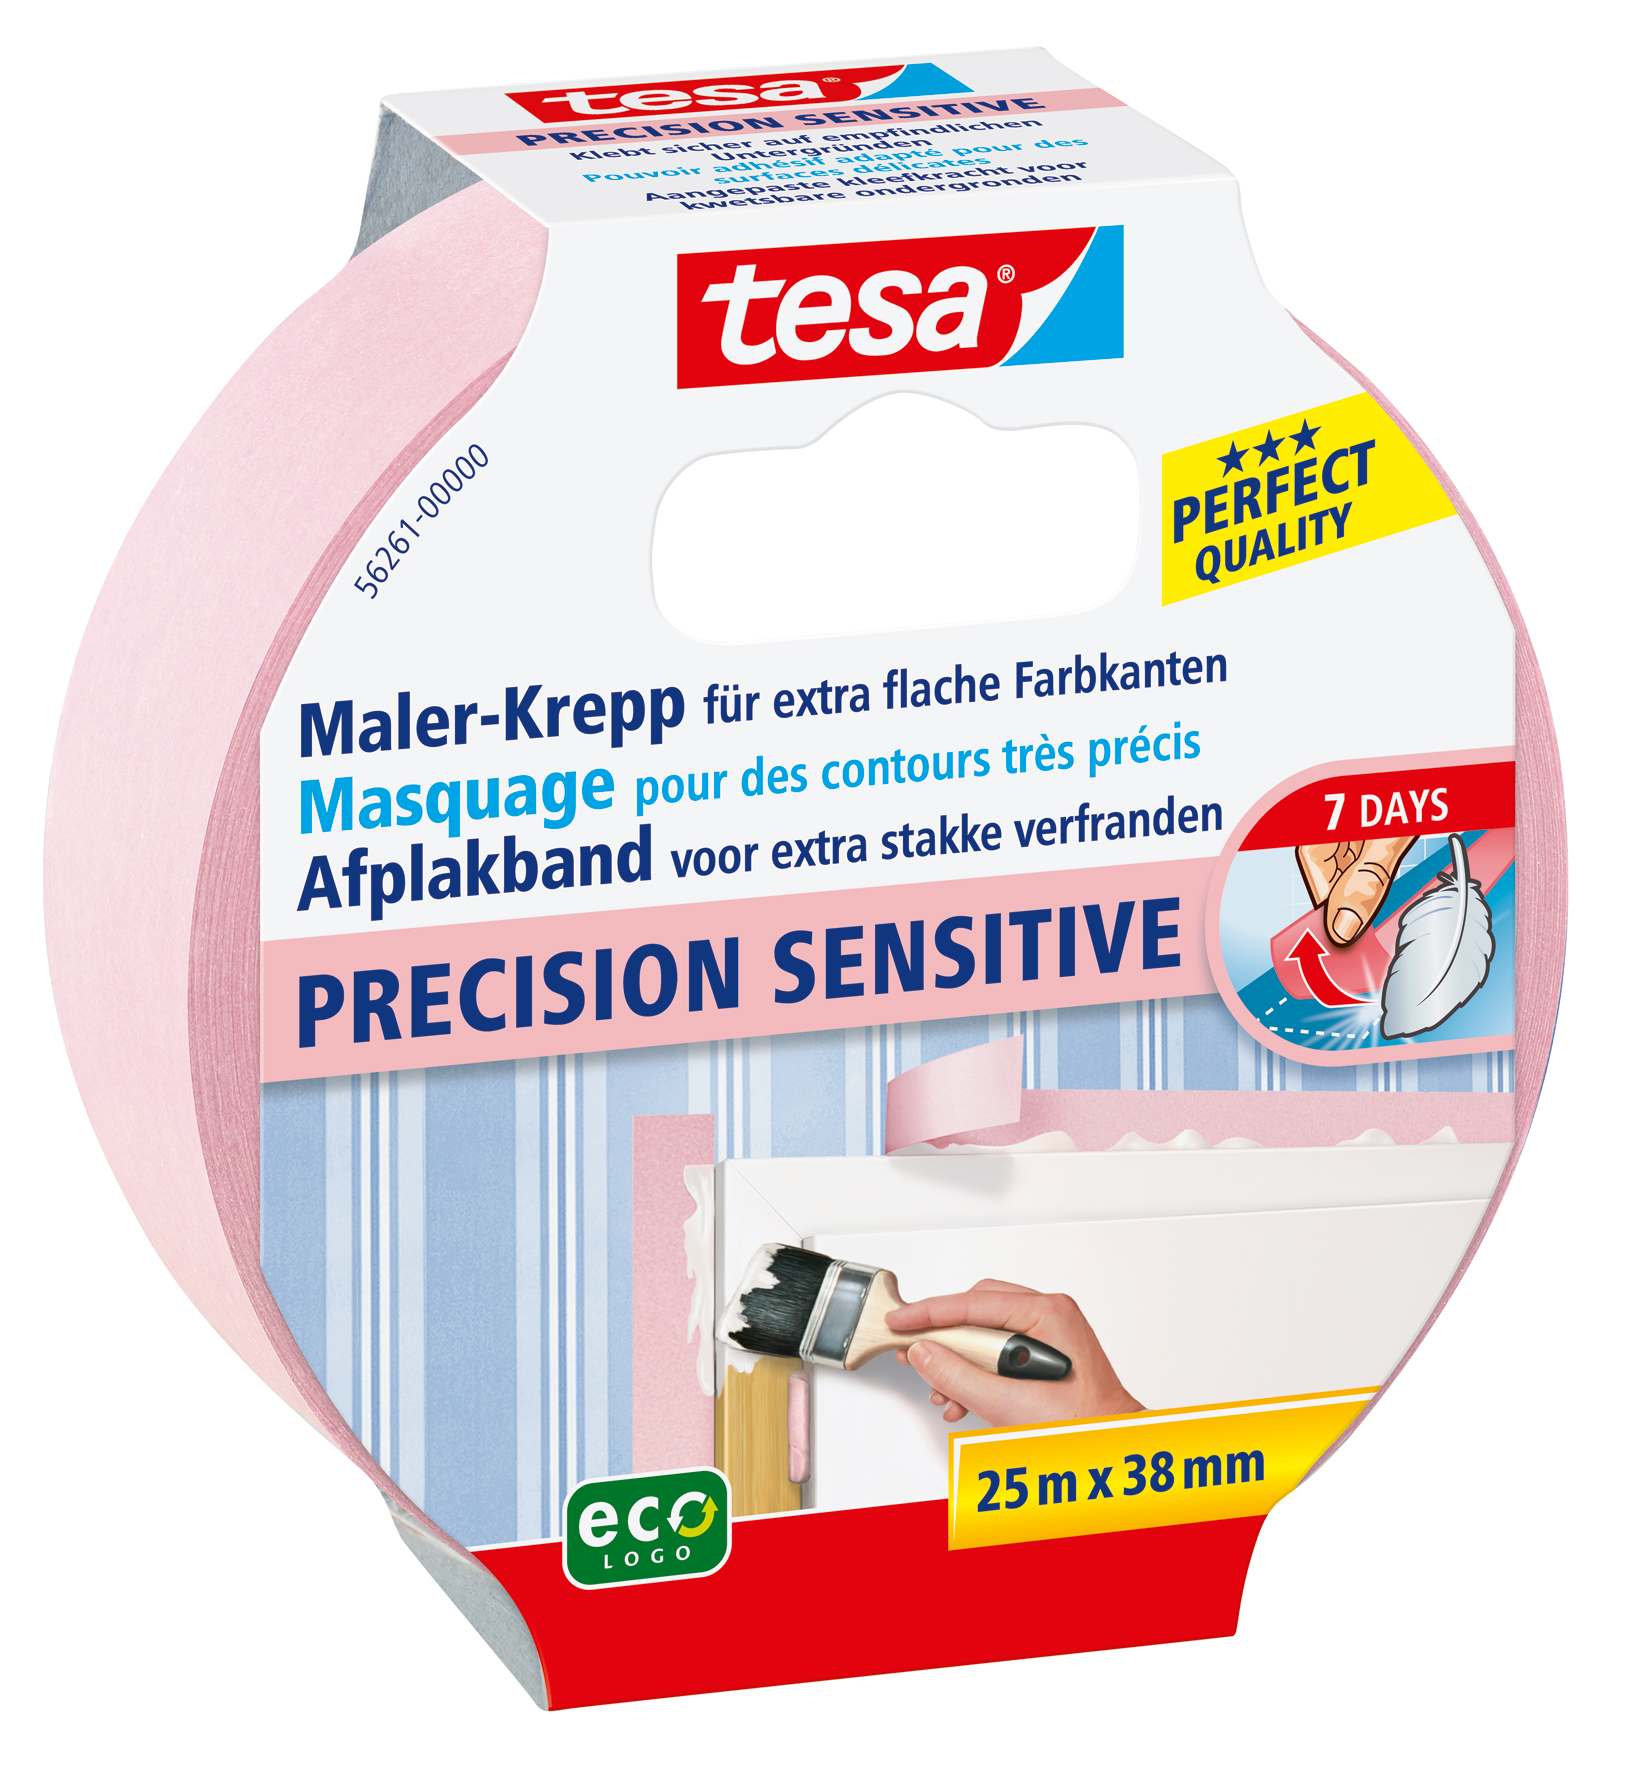 GP: 0,18 EUR/m 4 x tesa Maler-Krepp Precision Sensitive 25 m x 38 mm